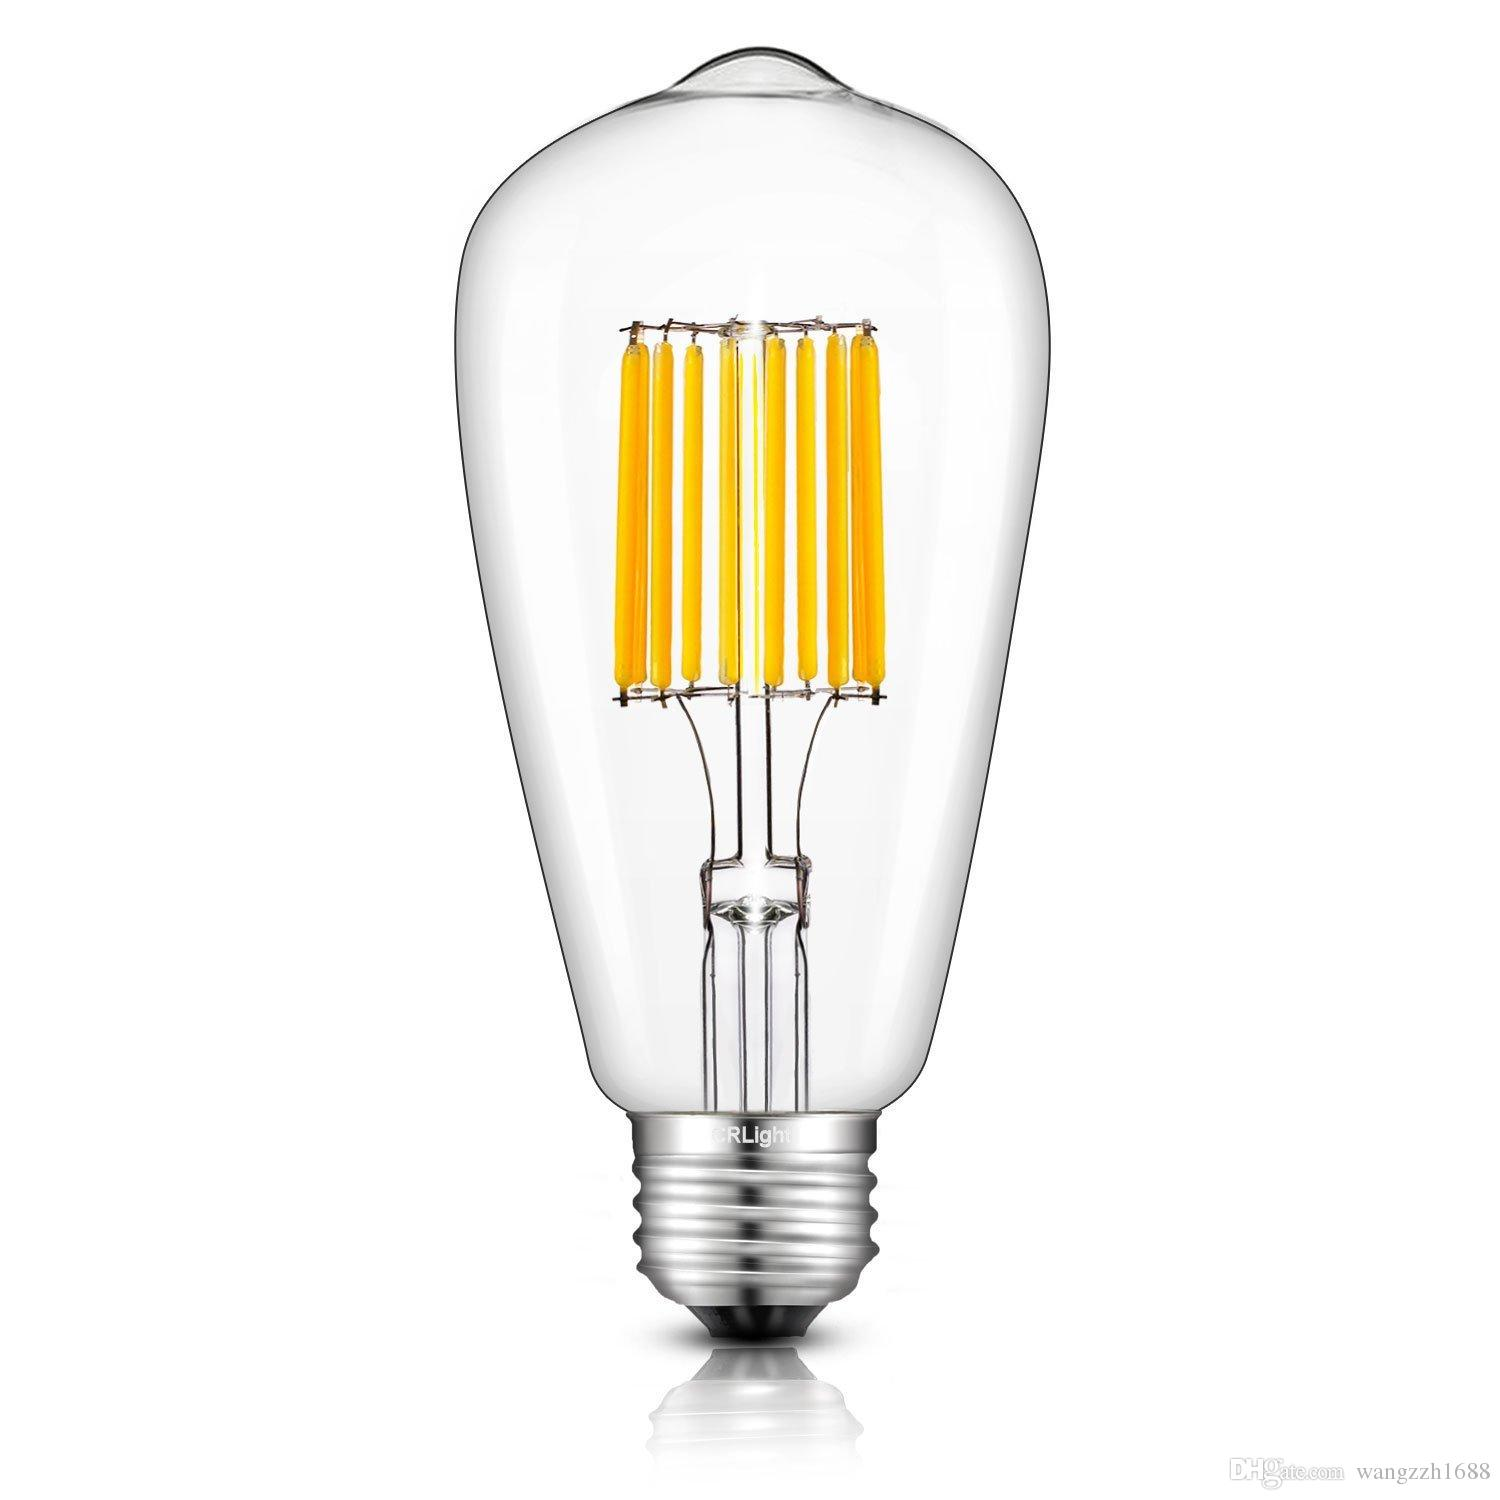 Exceptional Meegan 8w Led Tungsten Light Bulb, 800lm, 80w Incandescent Equivalent,  220v, E27 E26 Base, 4000k Nature White, Clear Glass Cover Led Candle Bulb  Led T8 ... Pictures